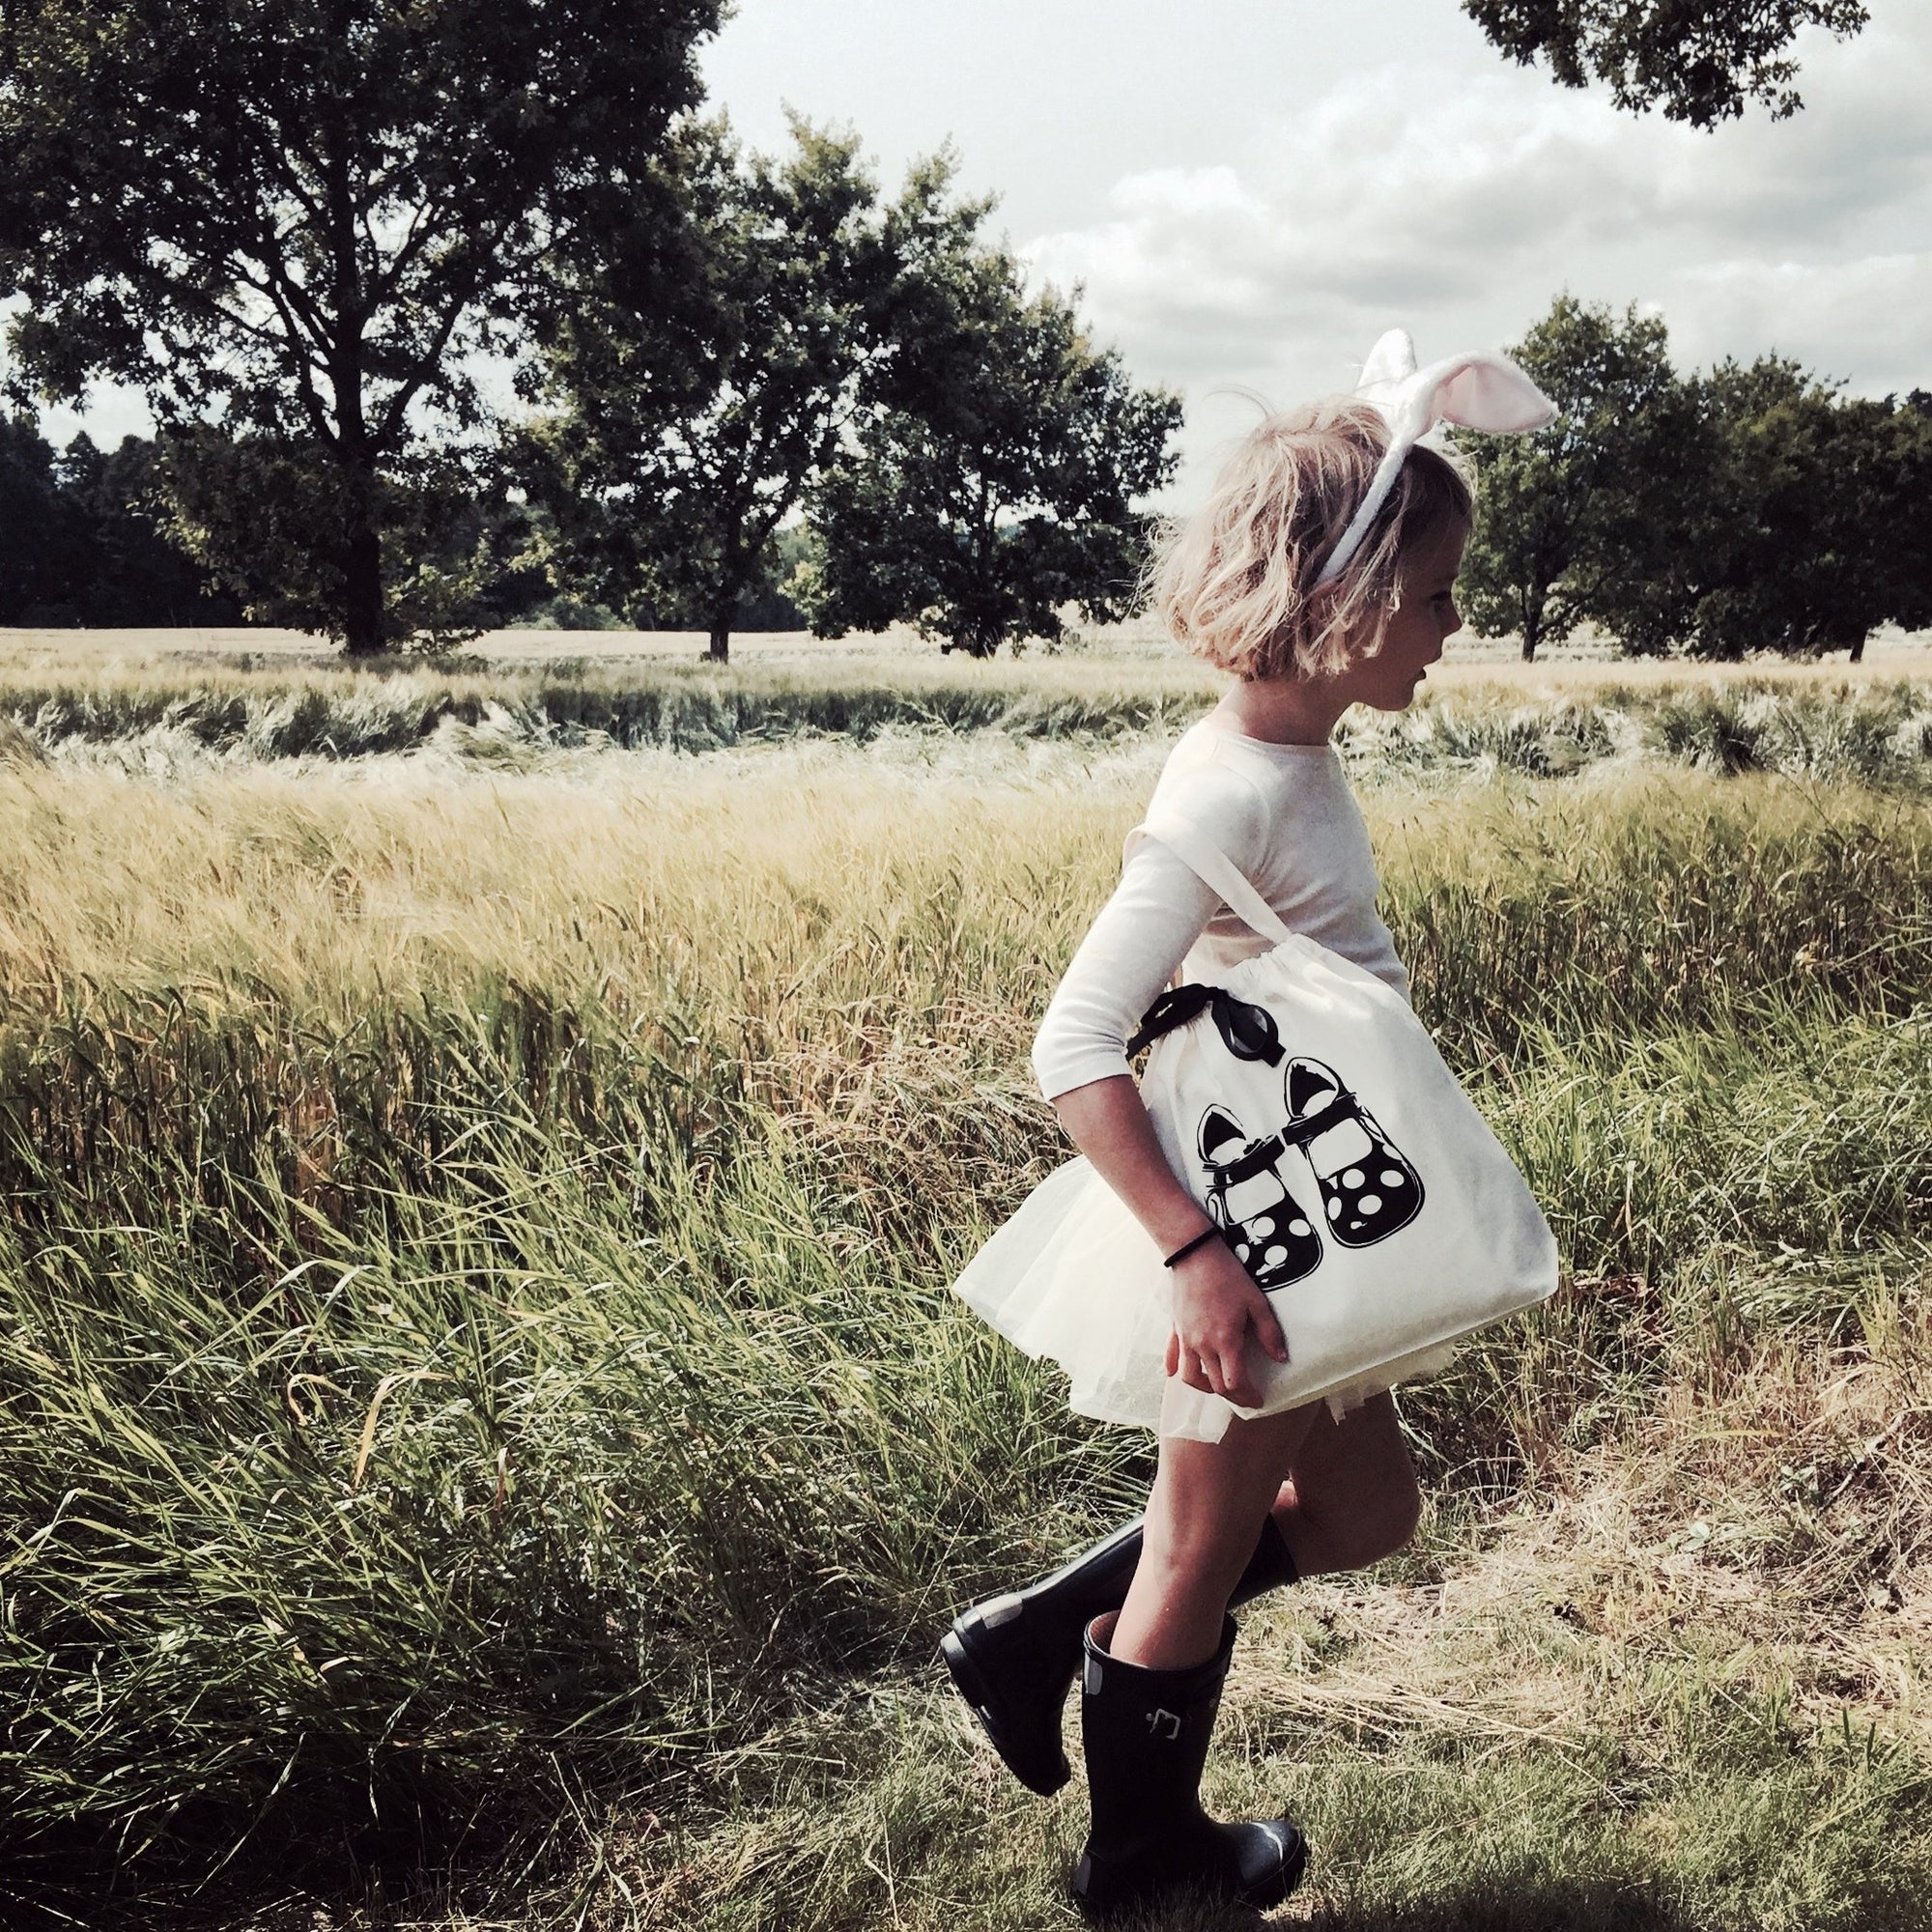 A child in a grassy field with a shoe bag.